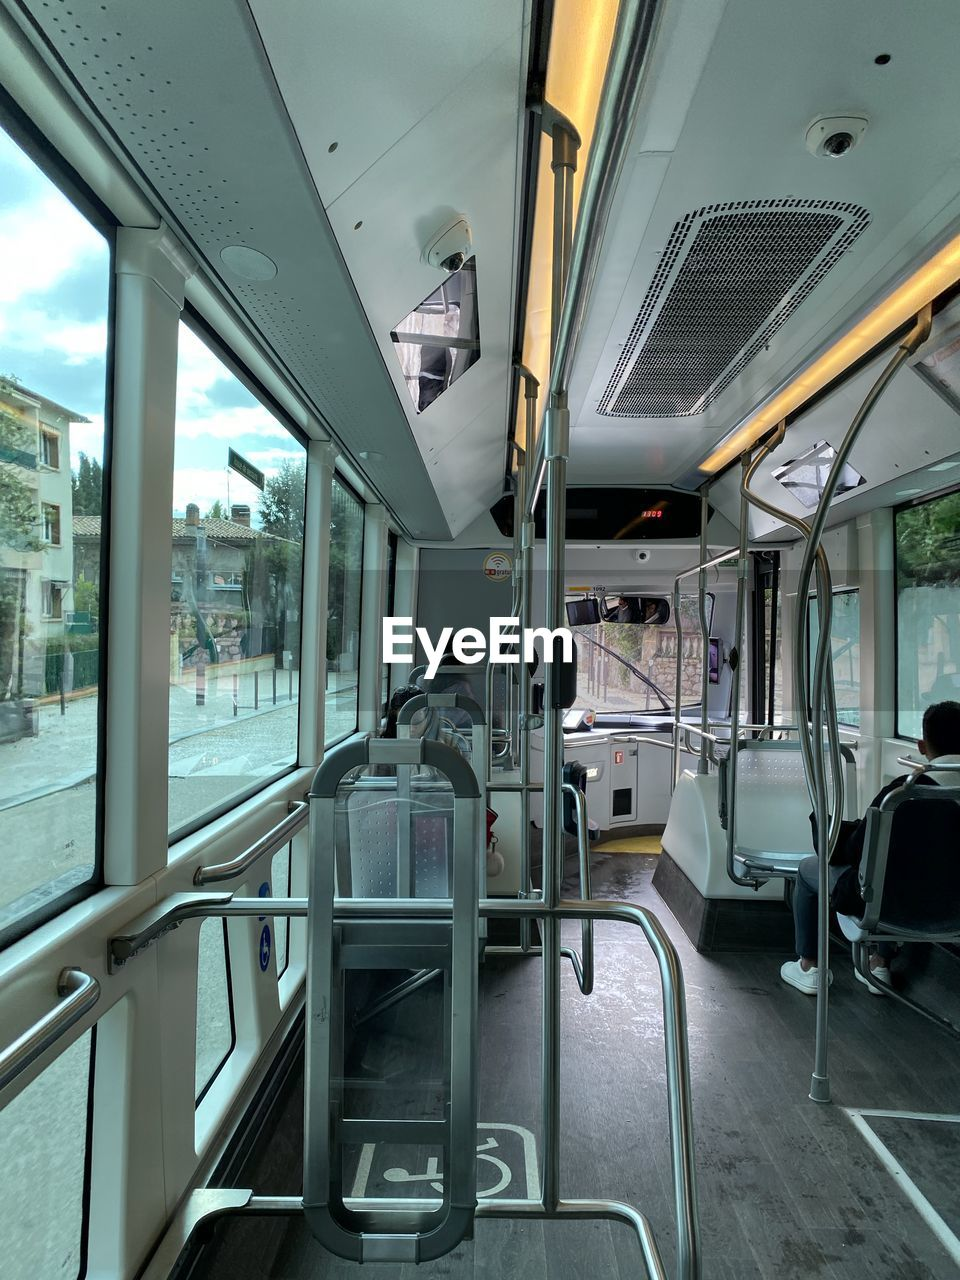 vehicle interior, mode of transportation, public transportation, transportation, vehicle seat, rail transportation, seat, train, empty, train - vehicle, glass - material, window, travel, land vehicle, day, train interior, bus, transparent, no people, absence, outdoors